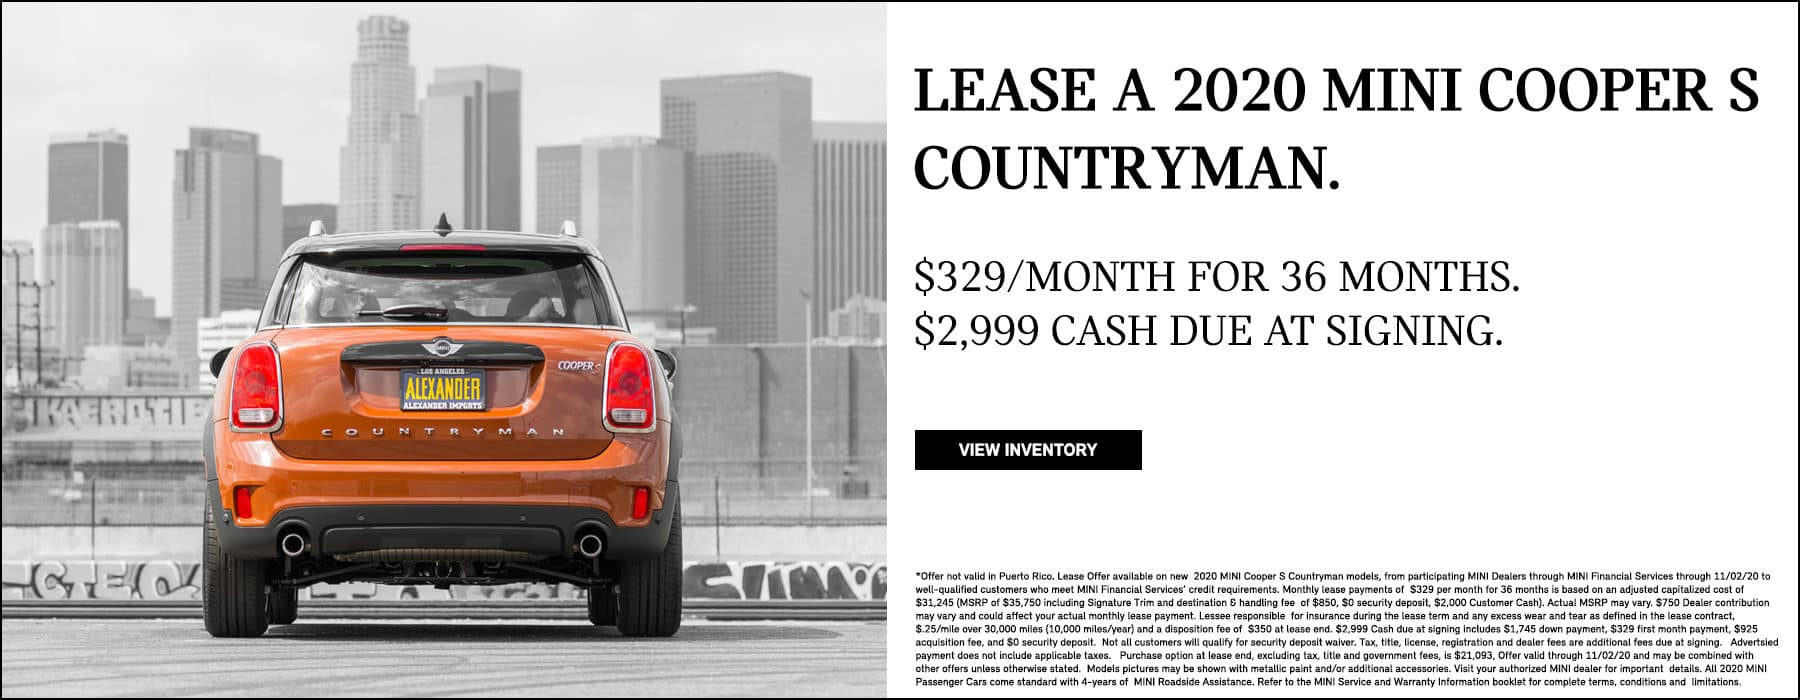 Lease a 2020 MINI Cooper S Countryman. $329/month for 36 months. $2,999 cash due at signing. View Inventory. See dealer for complete details.